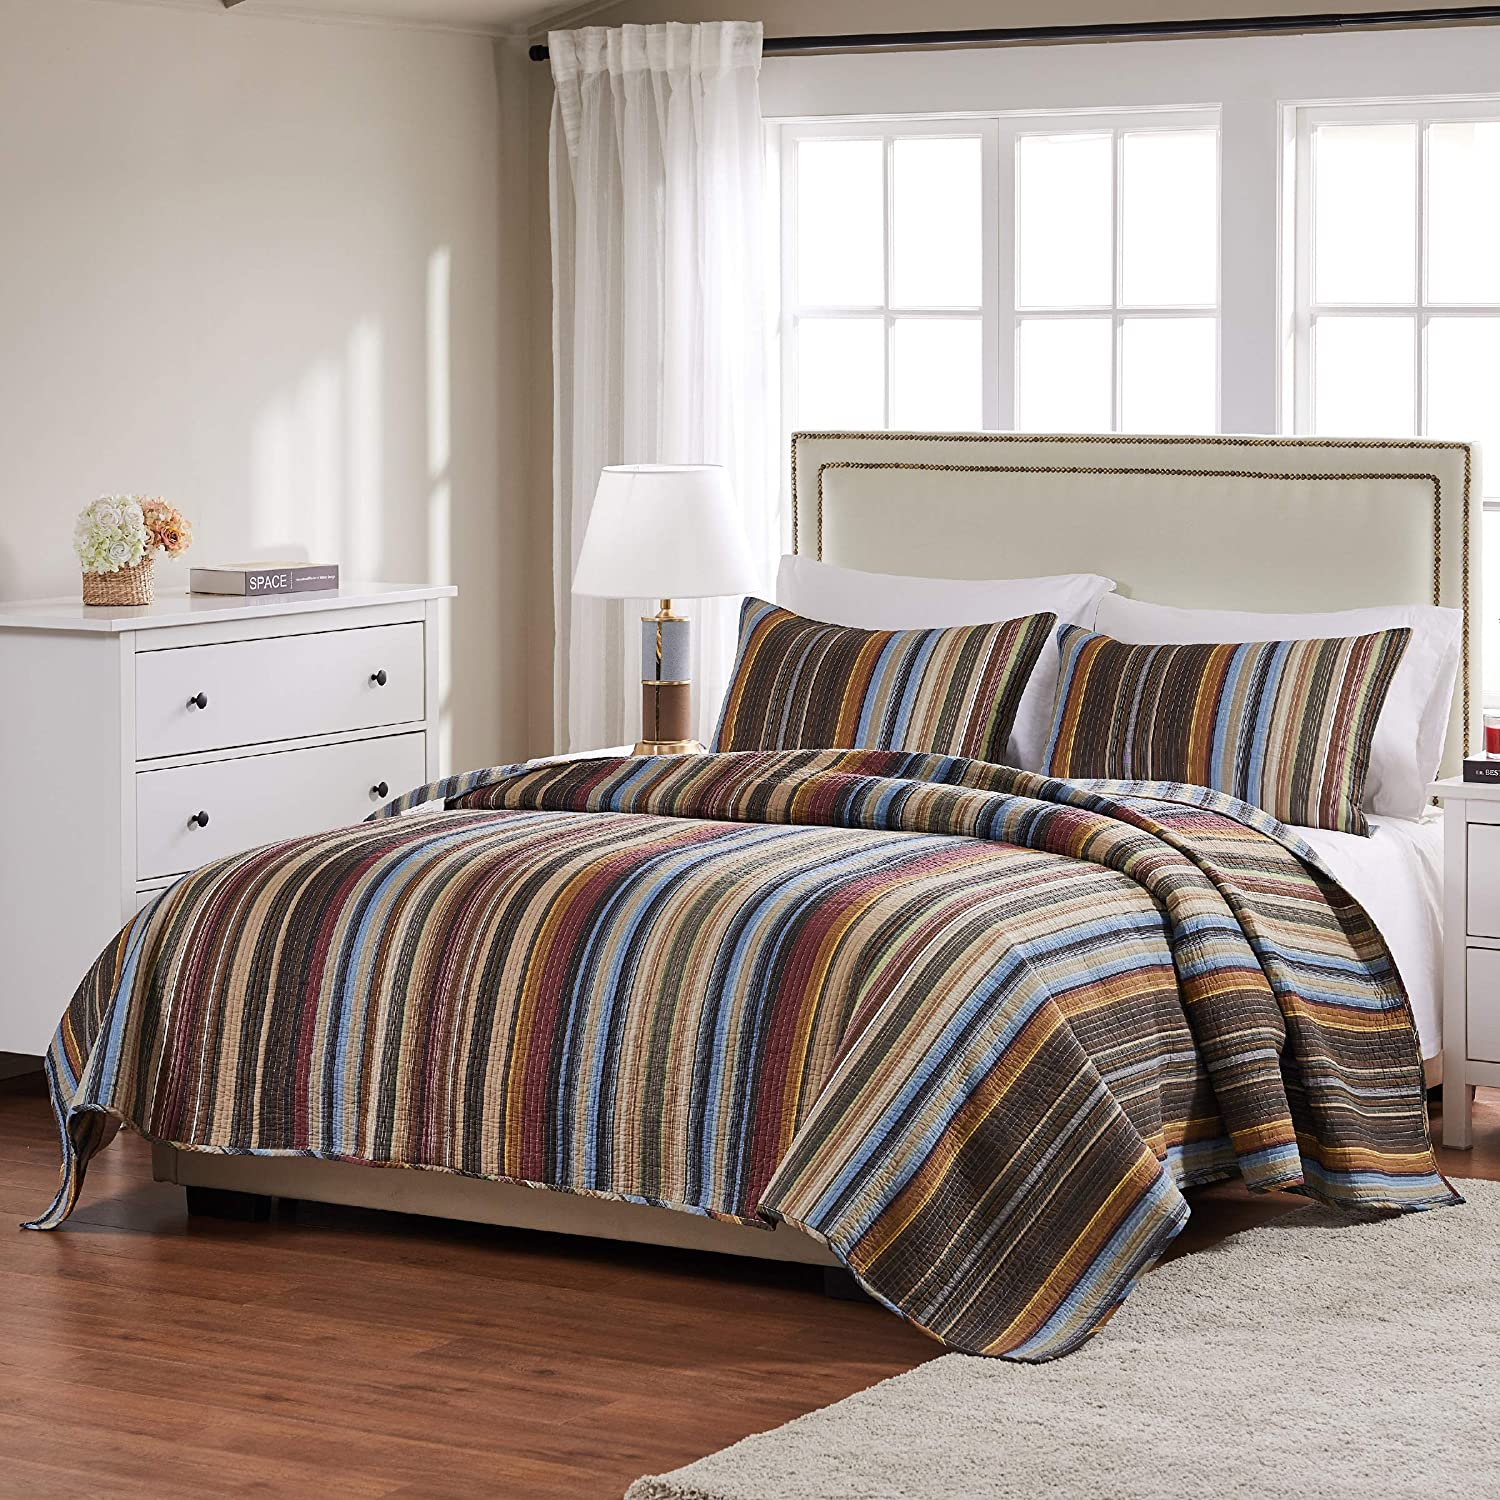 Greenland Home Durango Quilt Set, 3-Piece King/Cal King